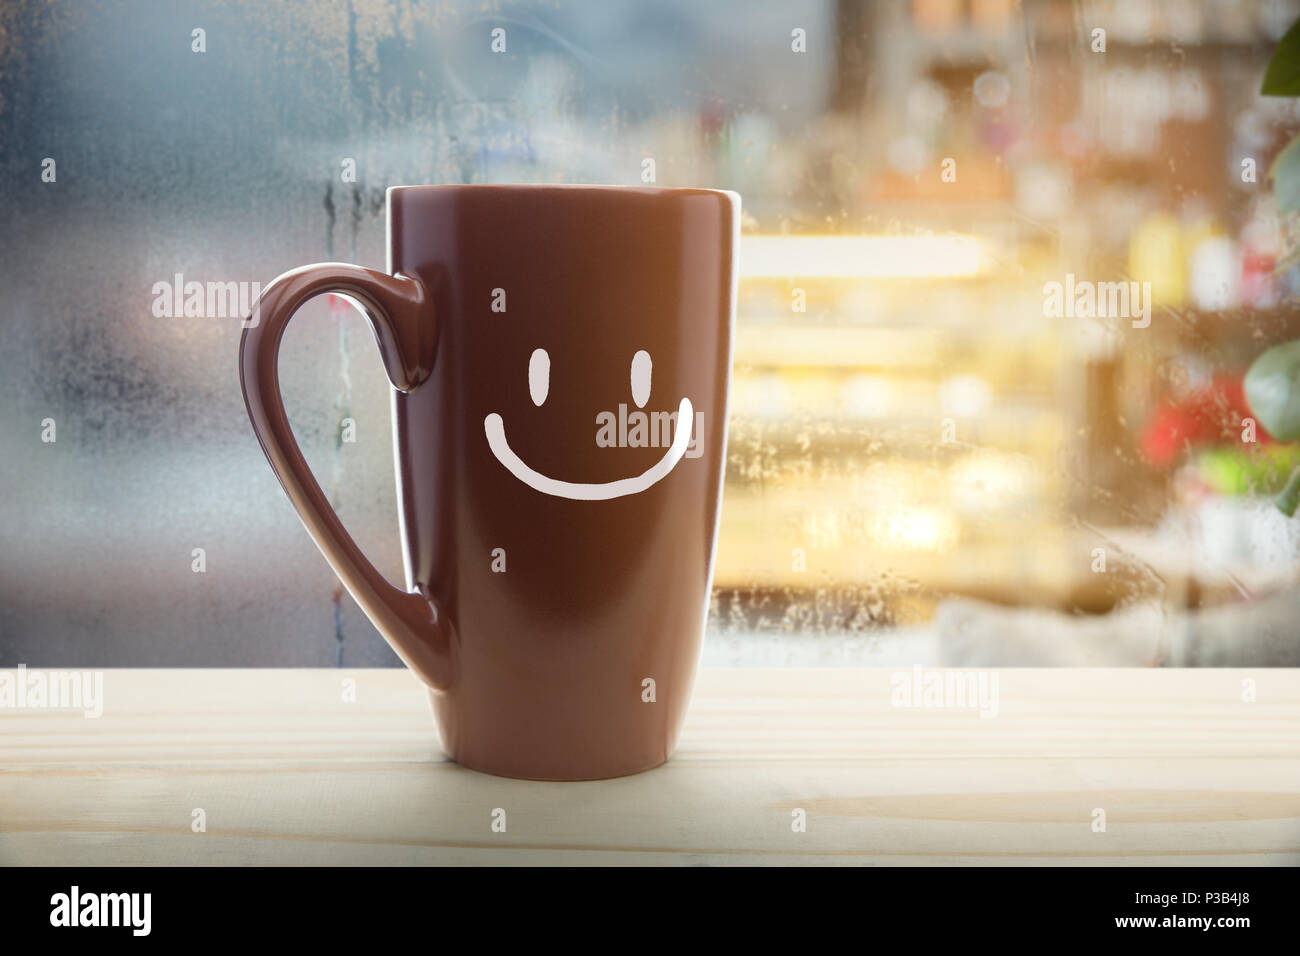 Coffee Cup On Happy Monday Photosamp; N8P0Onwyvm